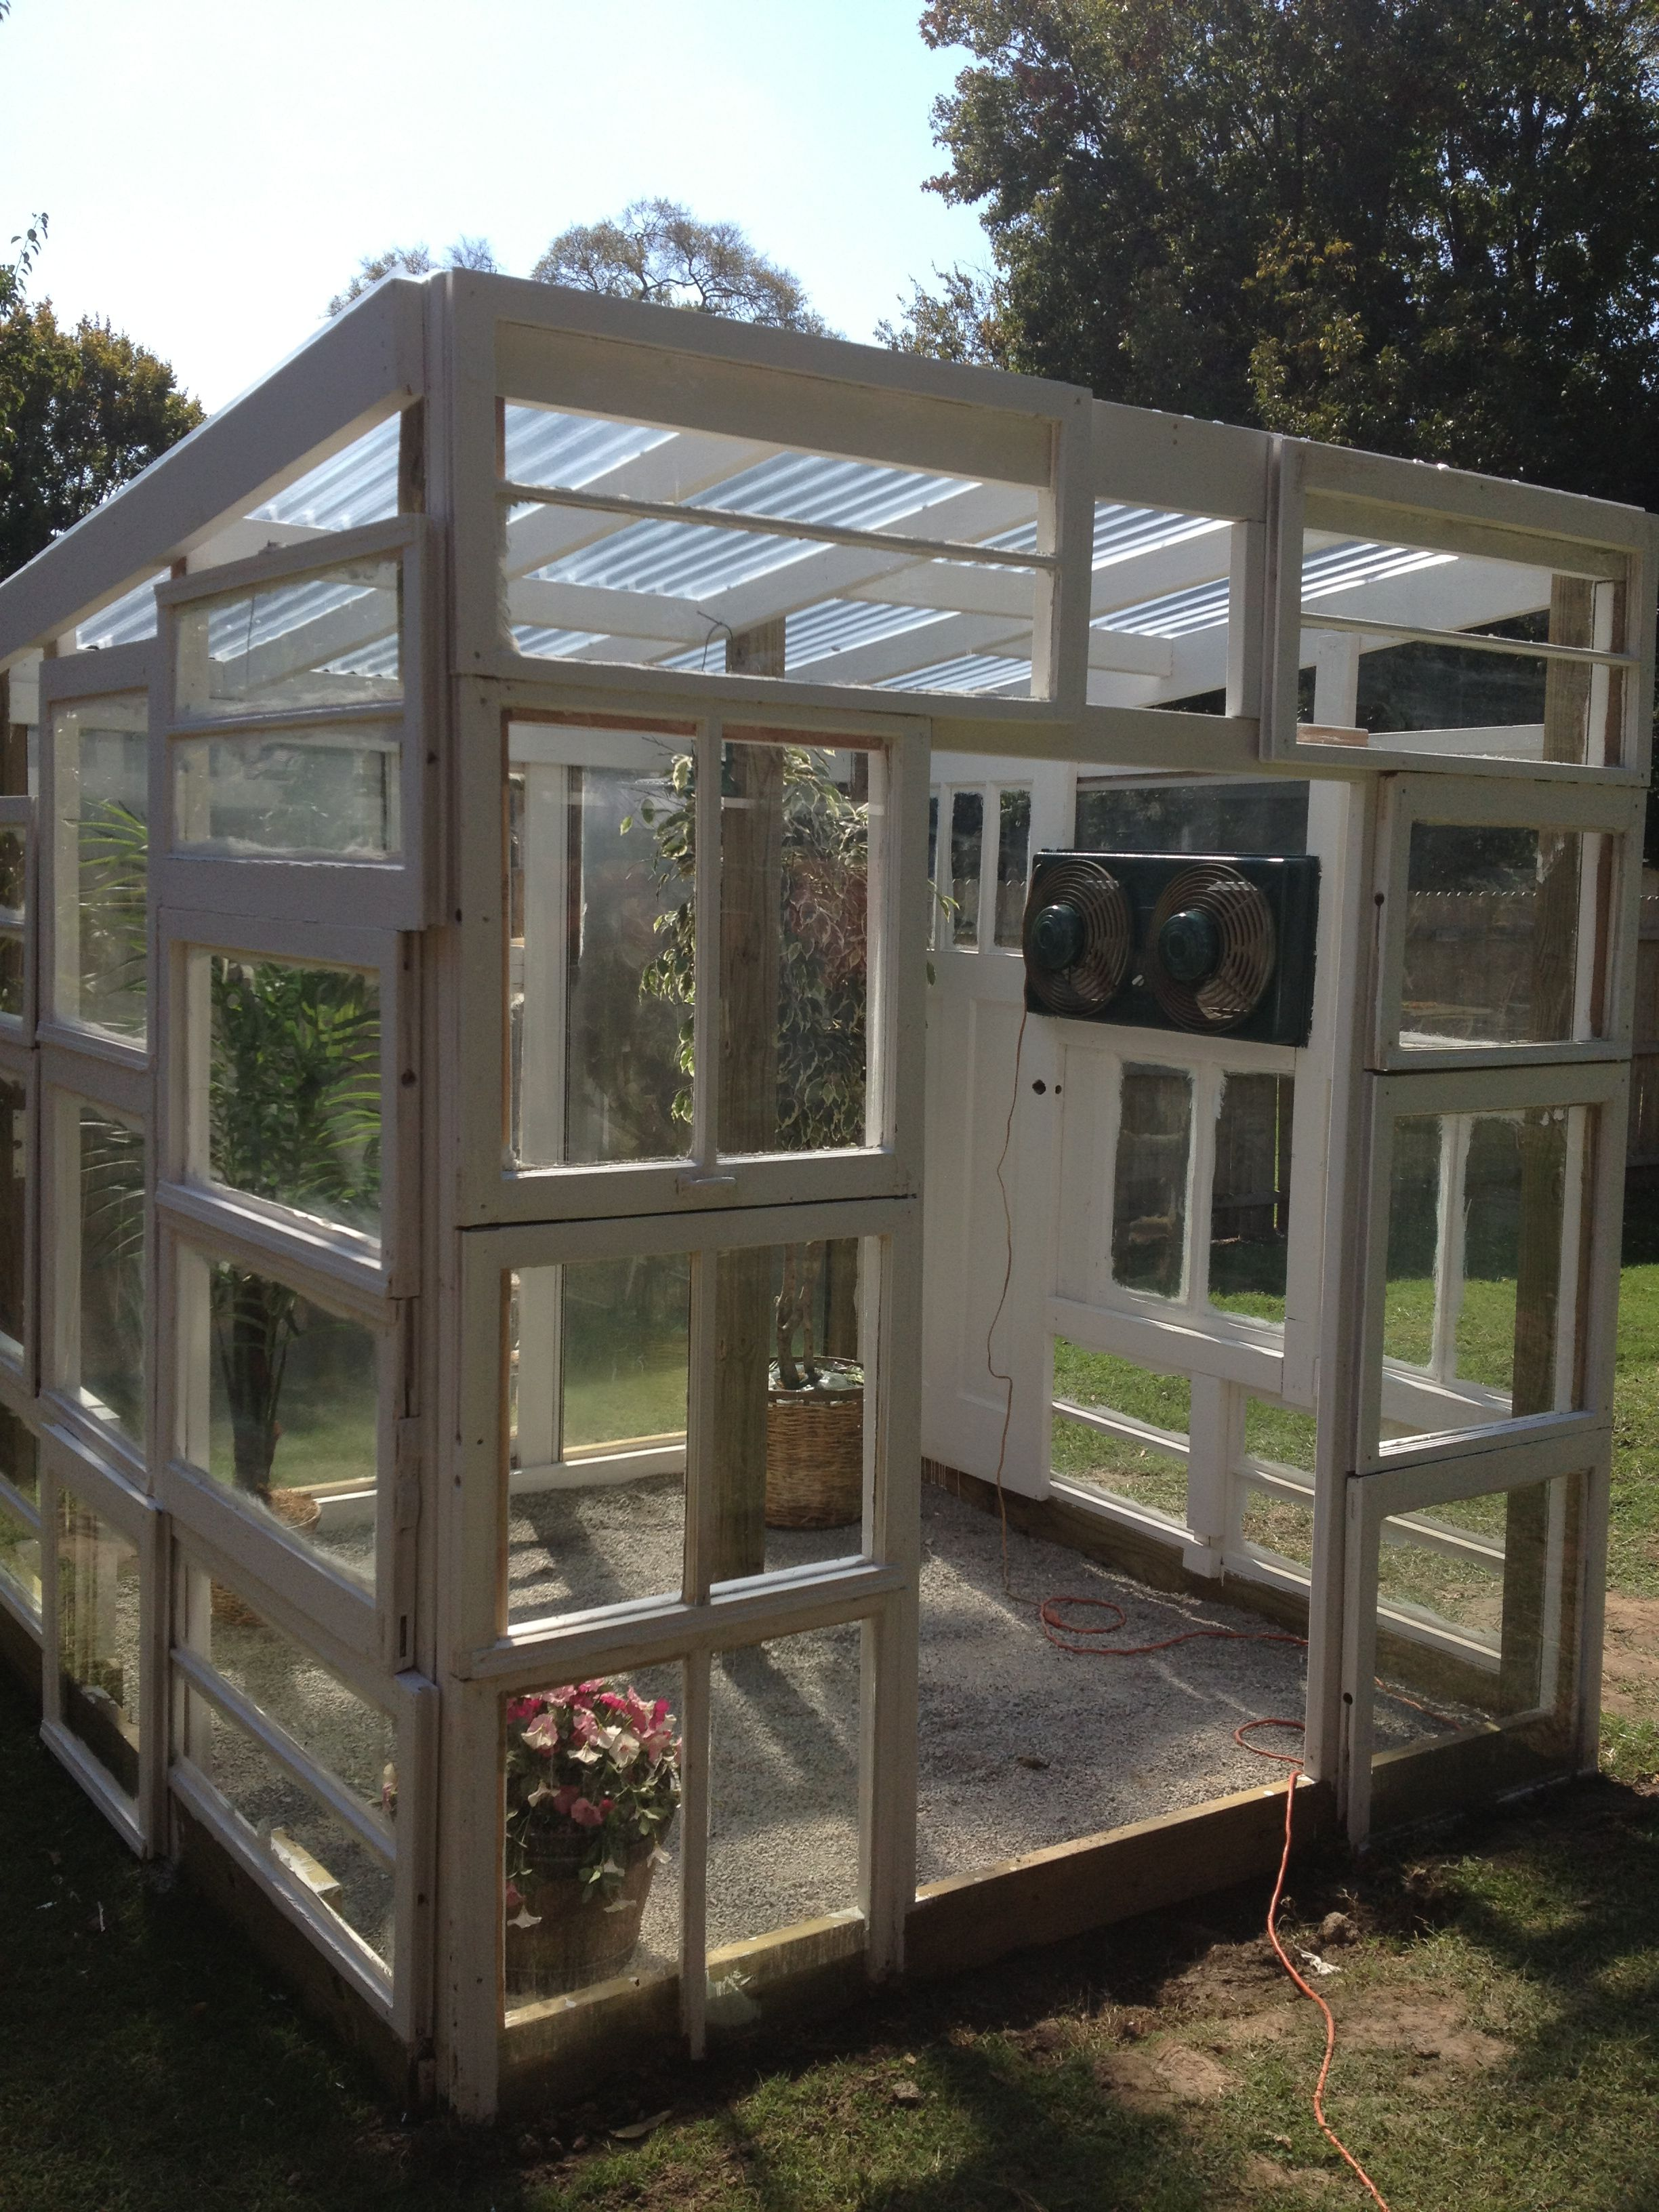 New greenhouse from old windows. I , , THIS ... on building a greenhouse with old windows, greenhouse from recycled materials, greenhouse from pallets, greenhouse from pvc pipe, greenhouse from shed, greenhouse windows for the home, building a greenhouse with storm windows, greenhouse windows for kitchen, greenhouse made out of windows,